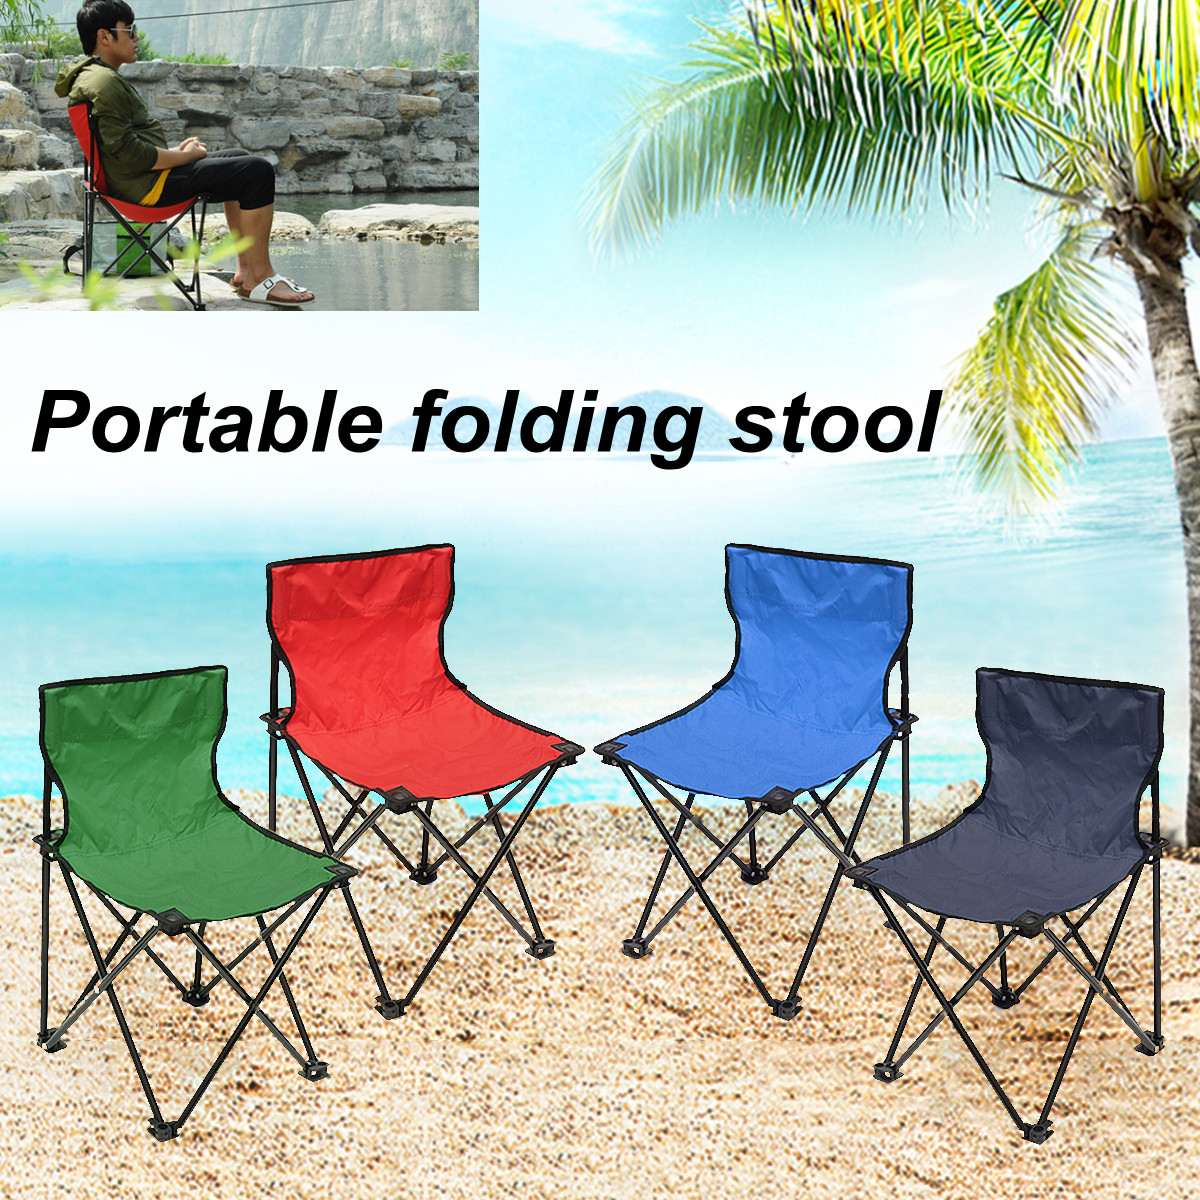 Portable Collapsible Chair Fishing Camping BBQ Stool Folding Hiking Seat Garden Ultralight Office Home FurniturePortable Collapsible Chair Fishing Camping BBQ Stool Folding Hiking Seat Garden Ultralight Office Home Furniture